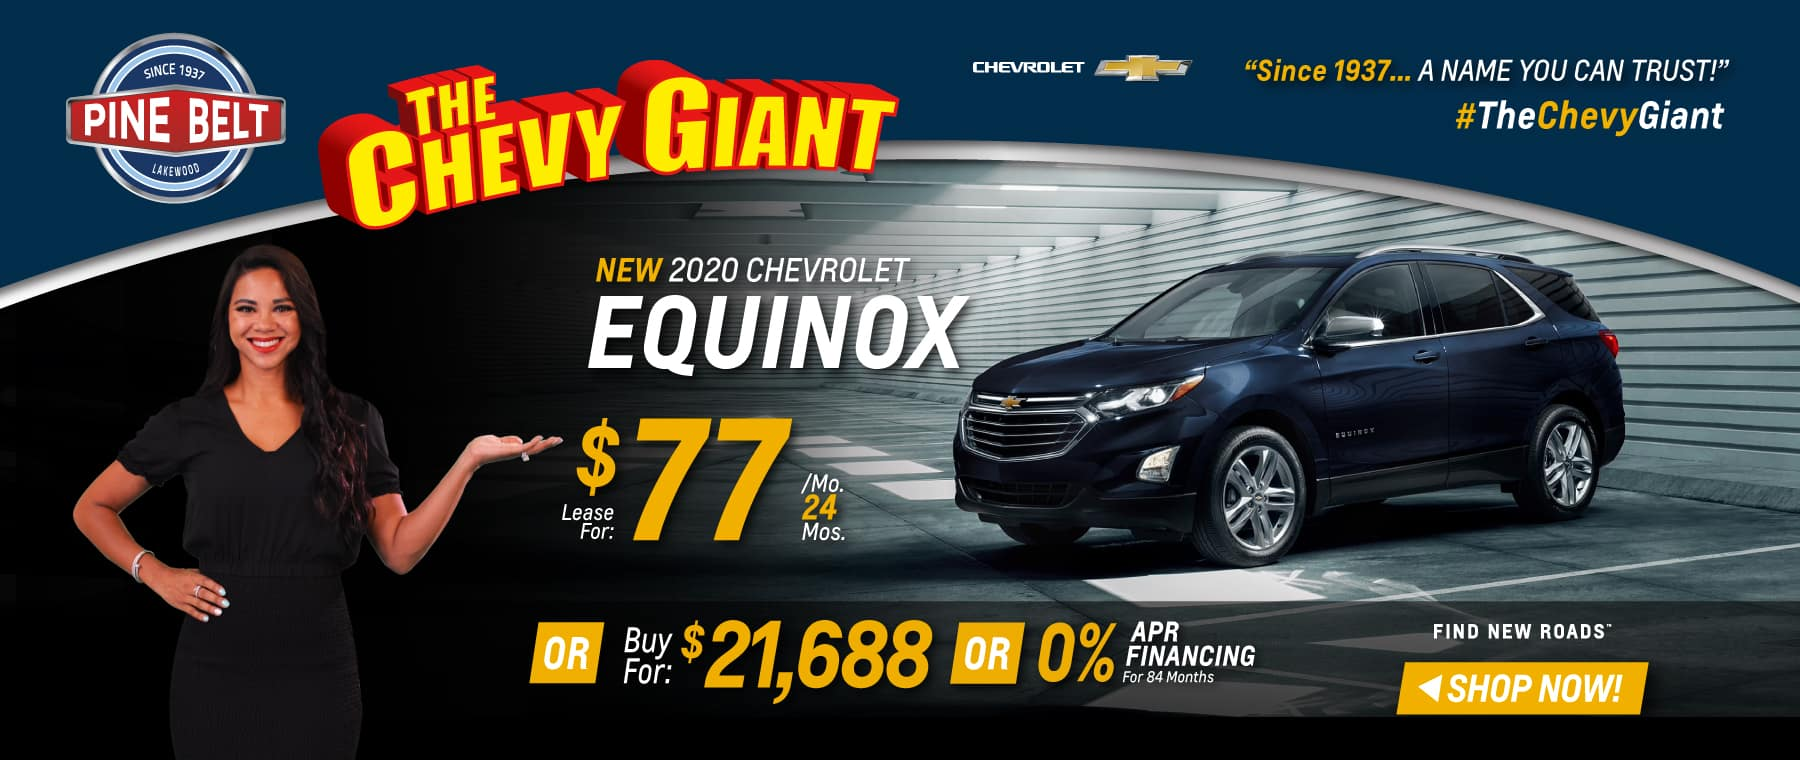 2020 Chevy Equinox Lease Deal for $77 per month or buy at $21,688